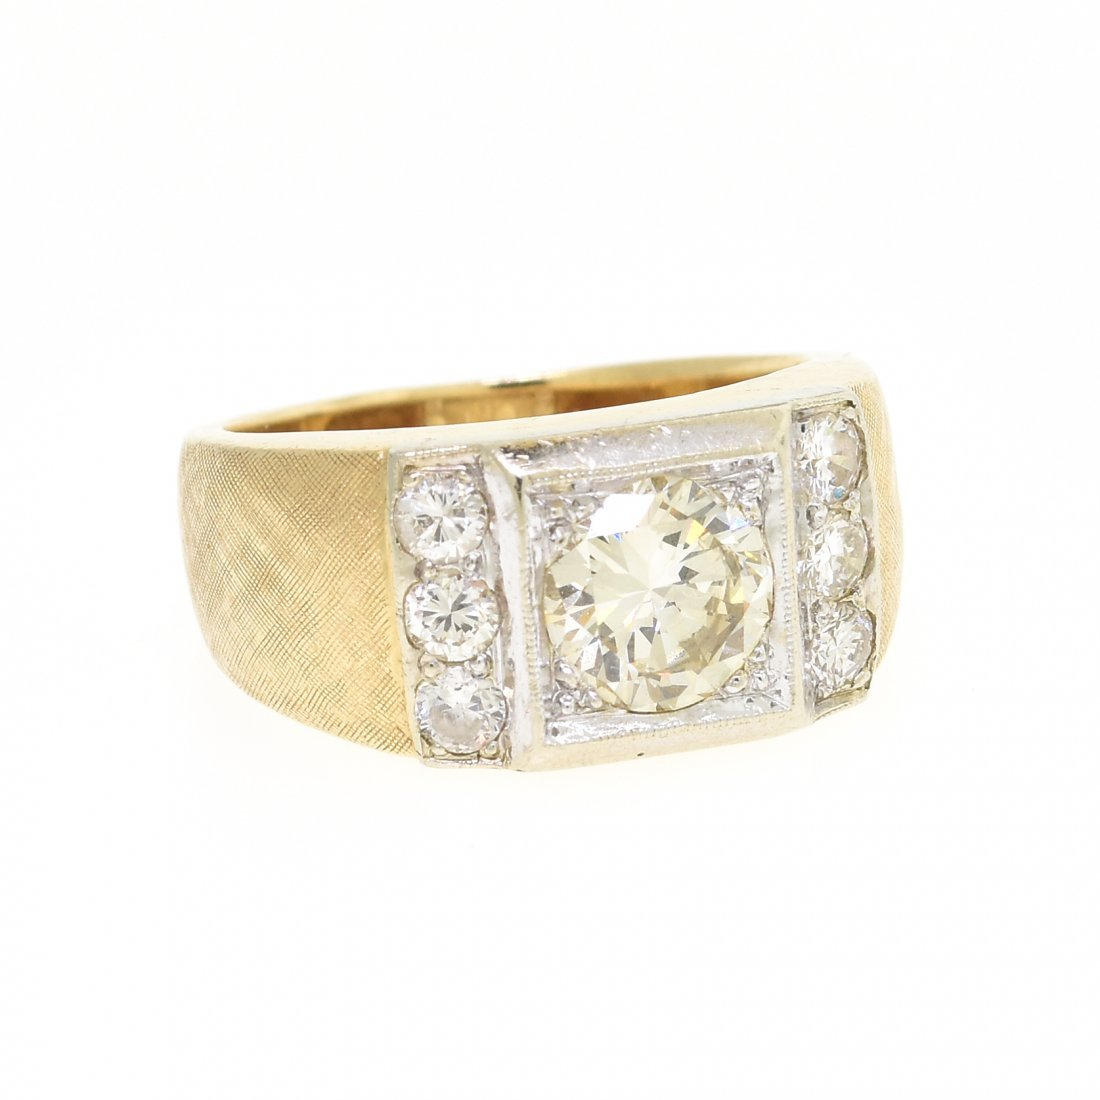 A 14K YELLOW GOLD AND DIAMOND GENT'S RING,